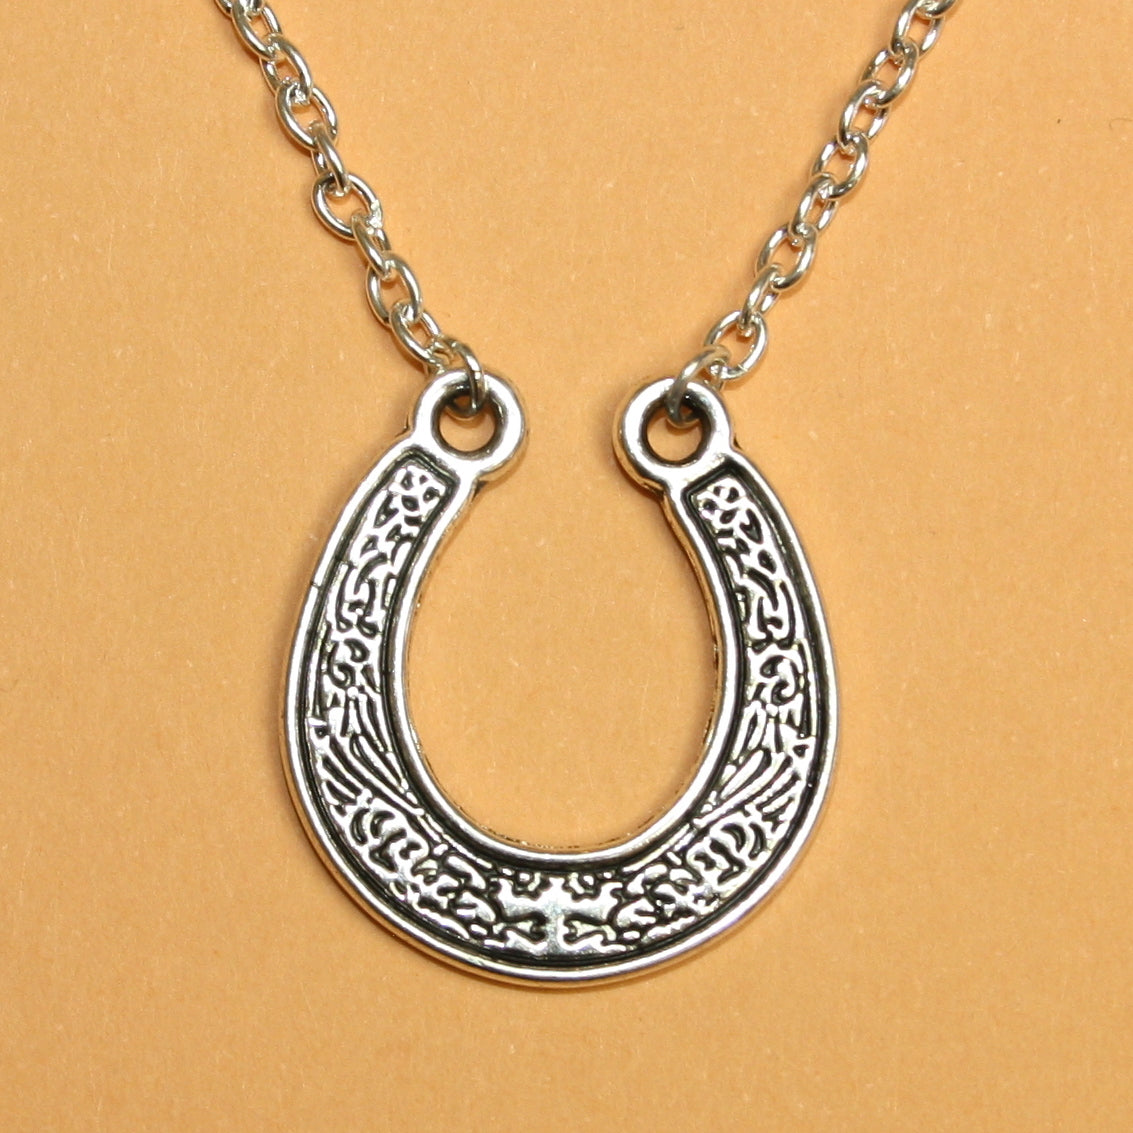 Engraved Horse Shoe Necklace